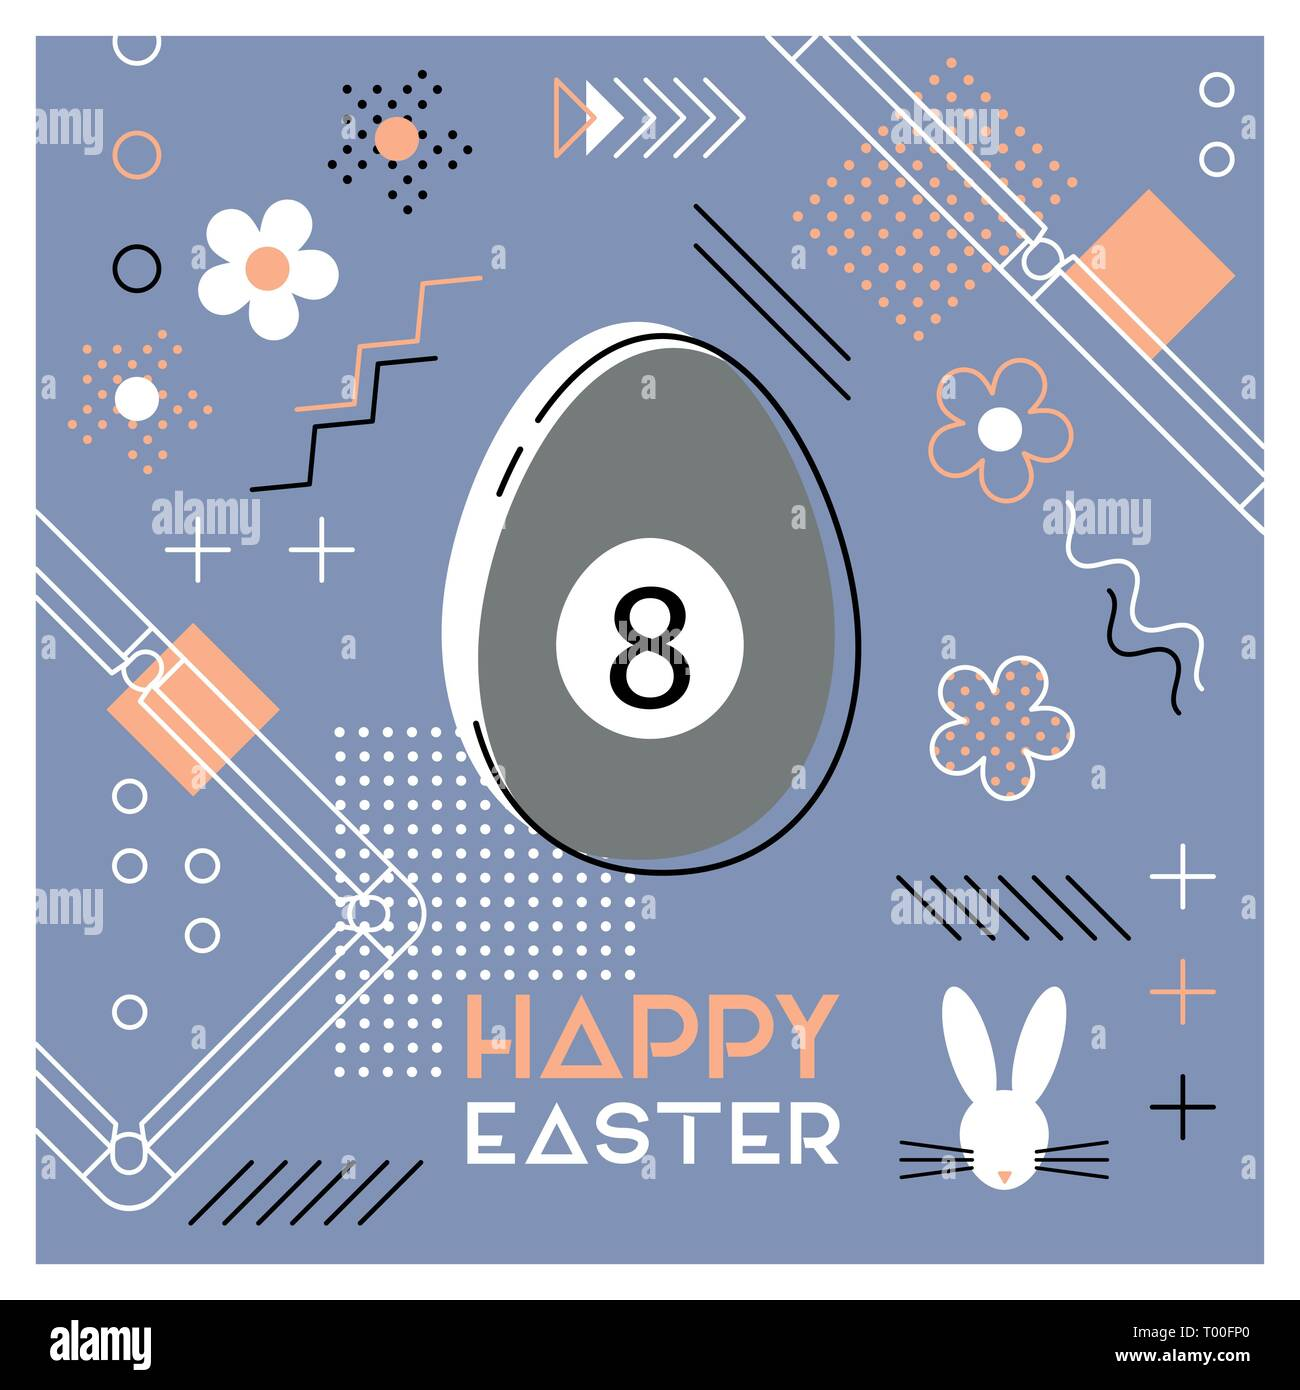 Happy Easter. Greeting card with Easter egg as a billiard ball. Abstract Memphis design. Vector illustration. - Stock Image